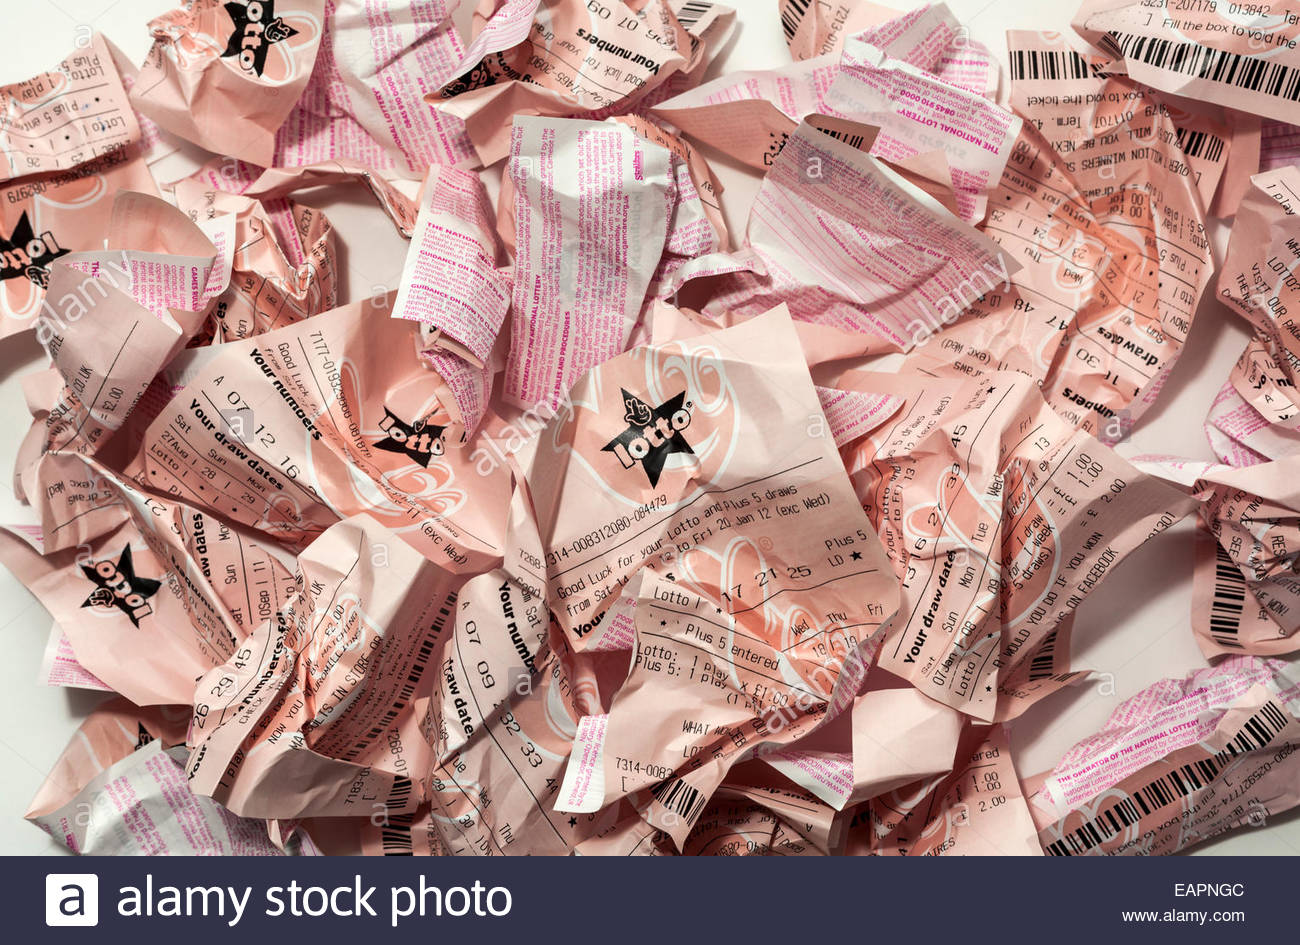 Scrunched up lottery tickets - Stock Image